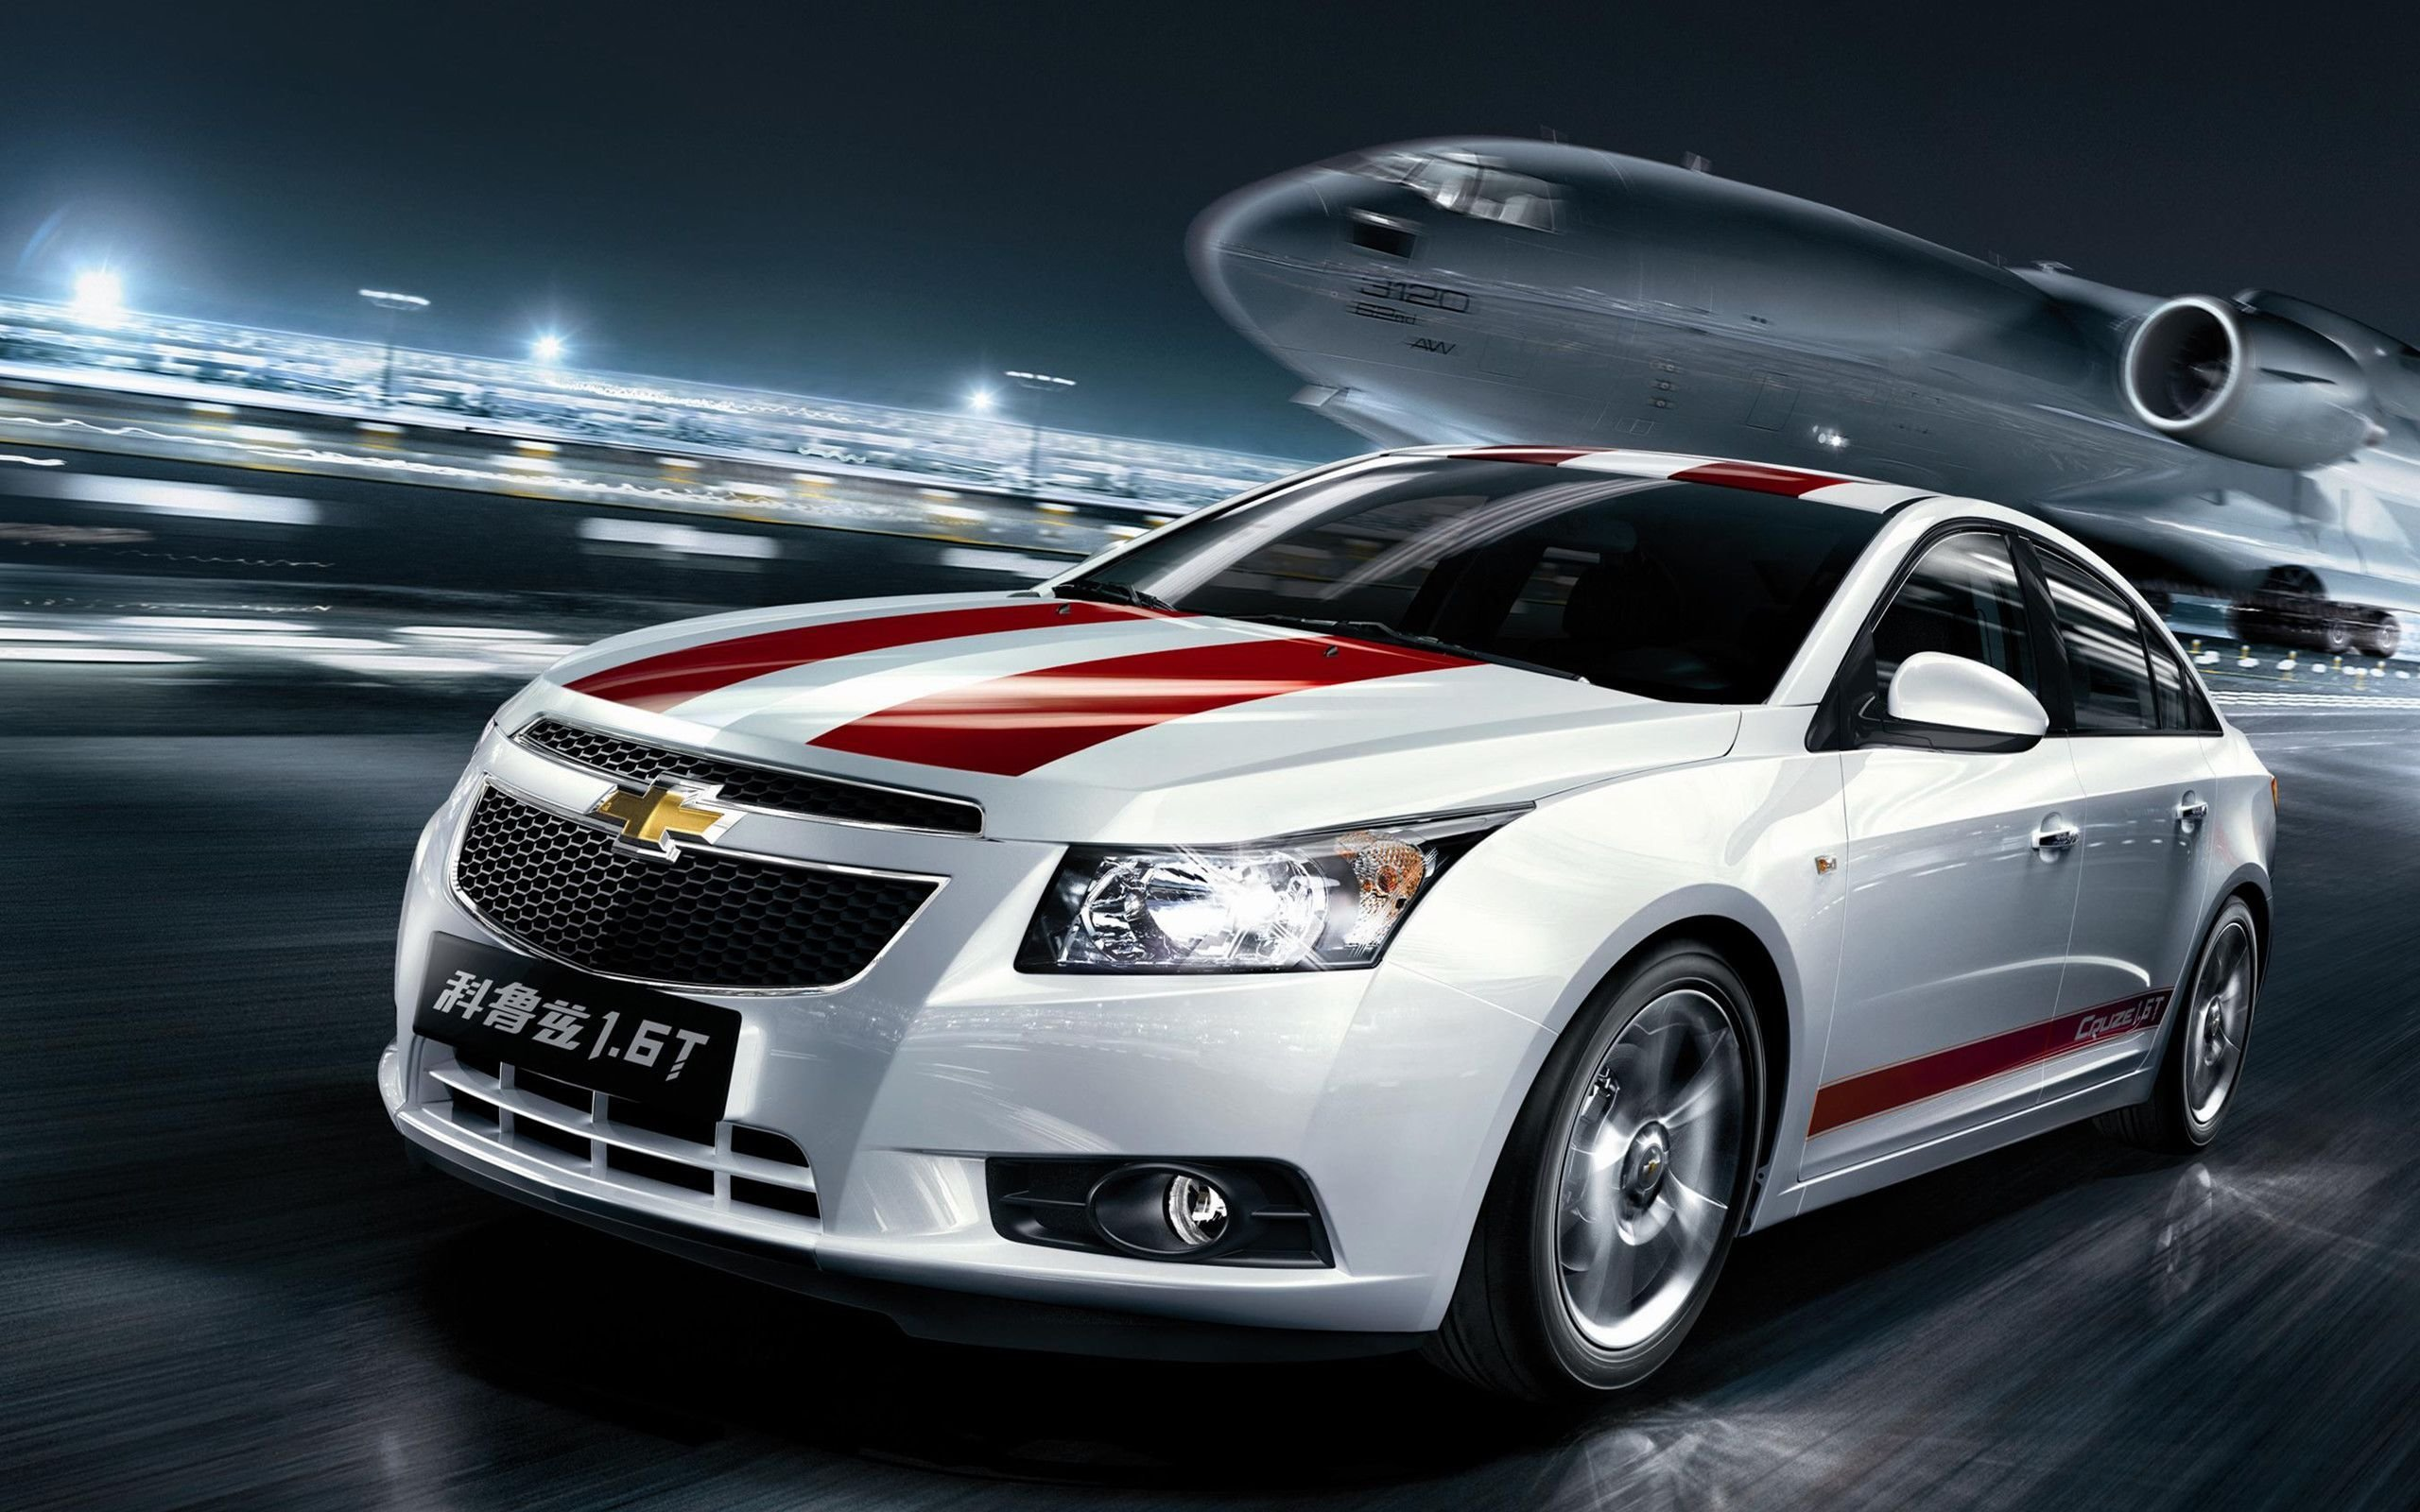 New Chevrolet Supercar Wallpapers Hd 42426 Wallpaper On This Month